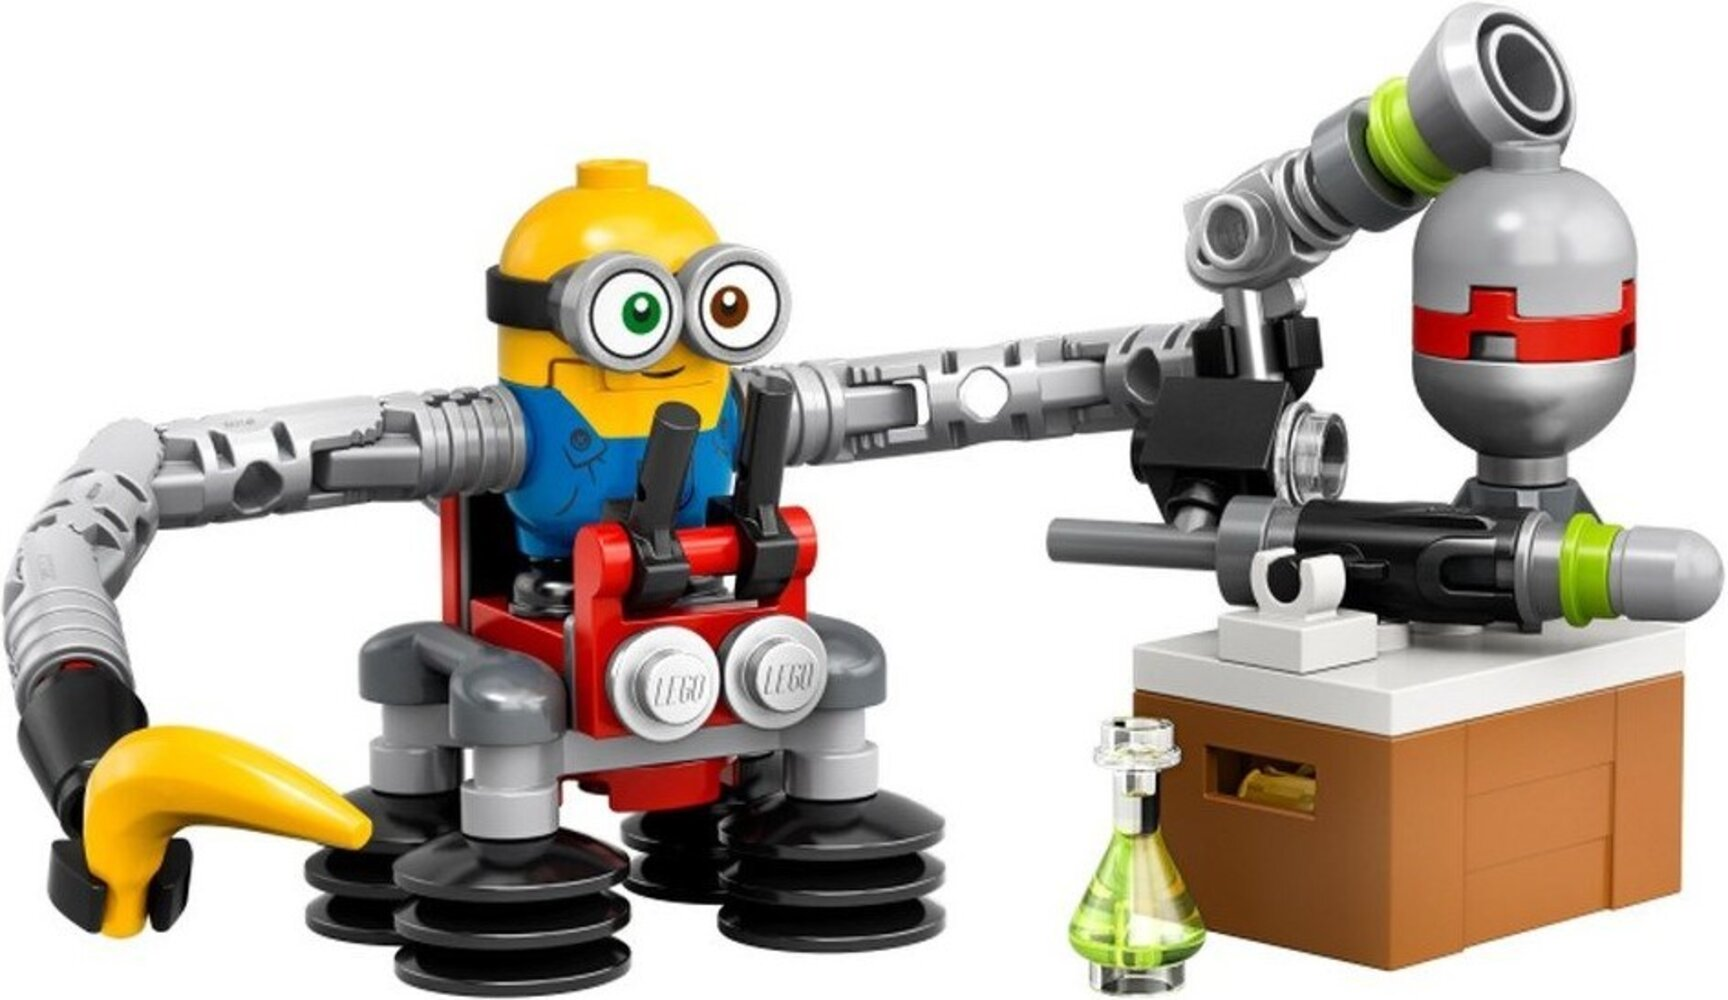 Bob Minion with Robot Arms